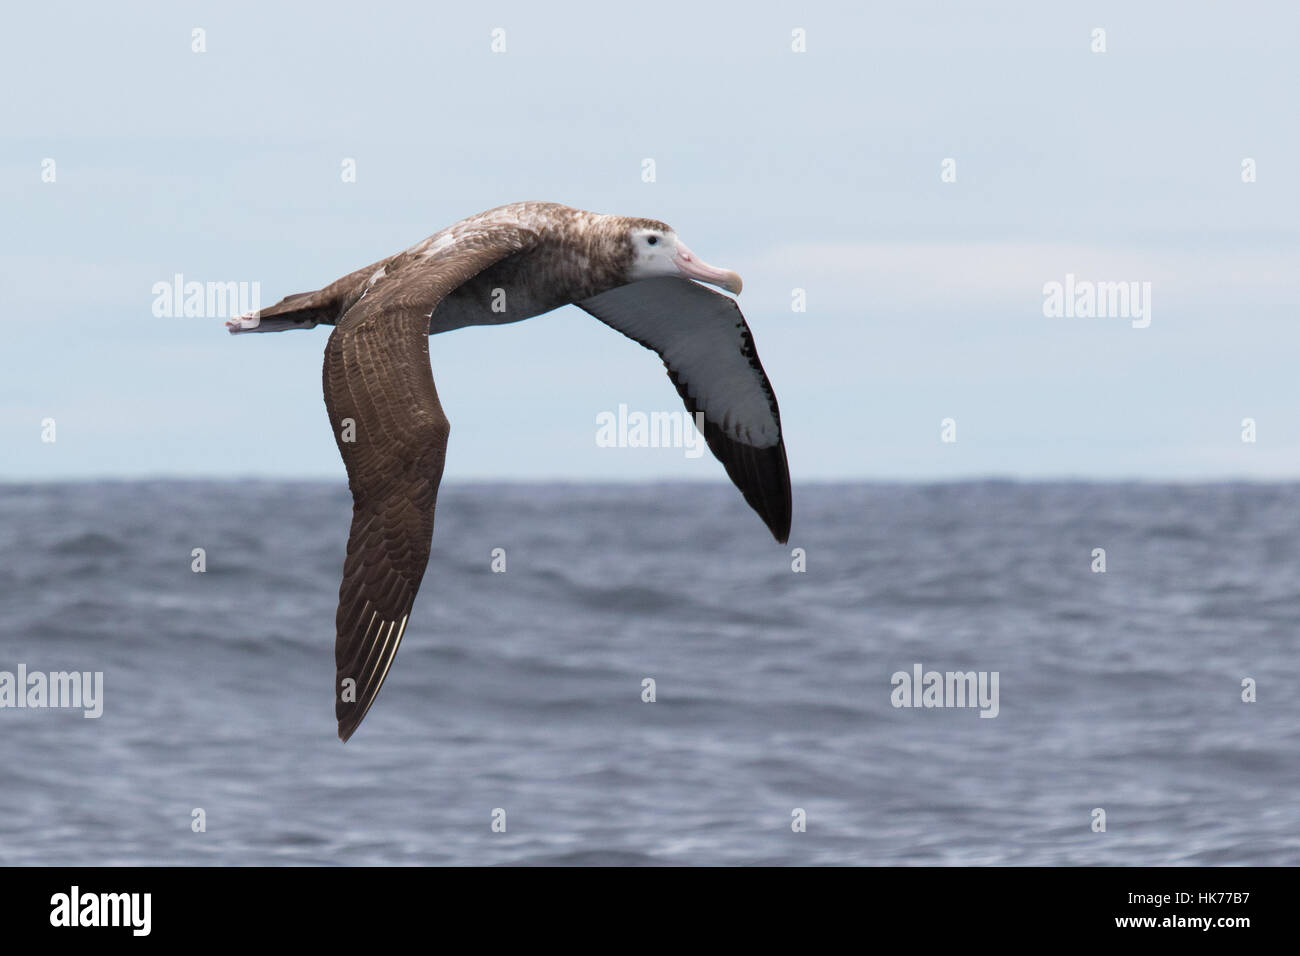 immature Wandering Albatross (Diomedea exulans) flying over the Pacific Ocean - Stock Image